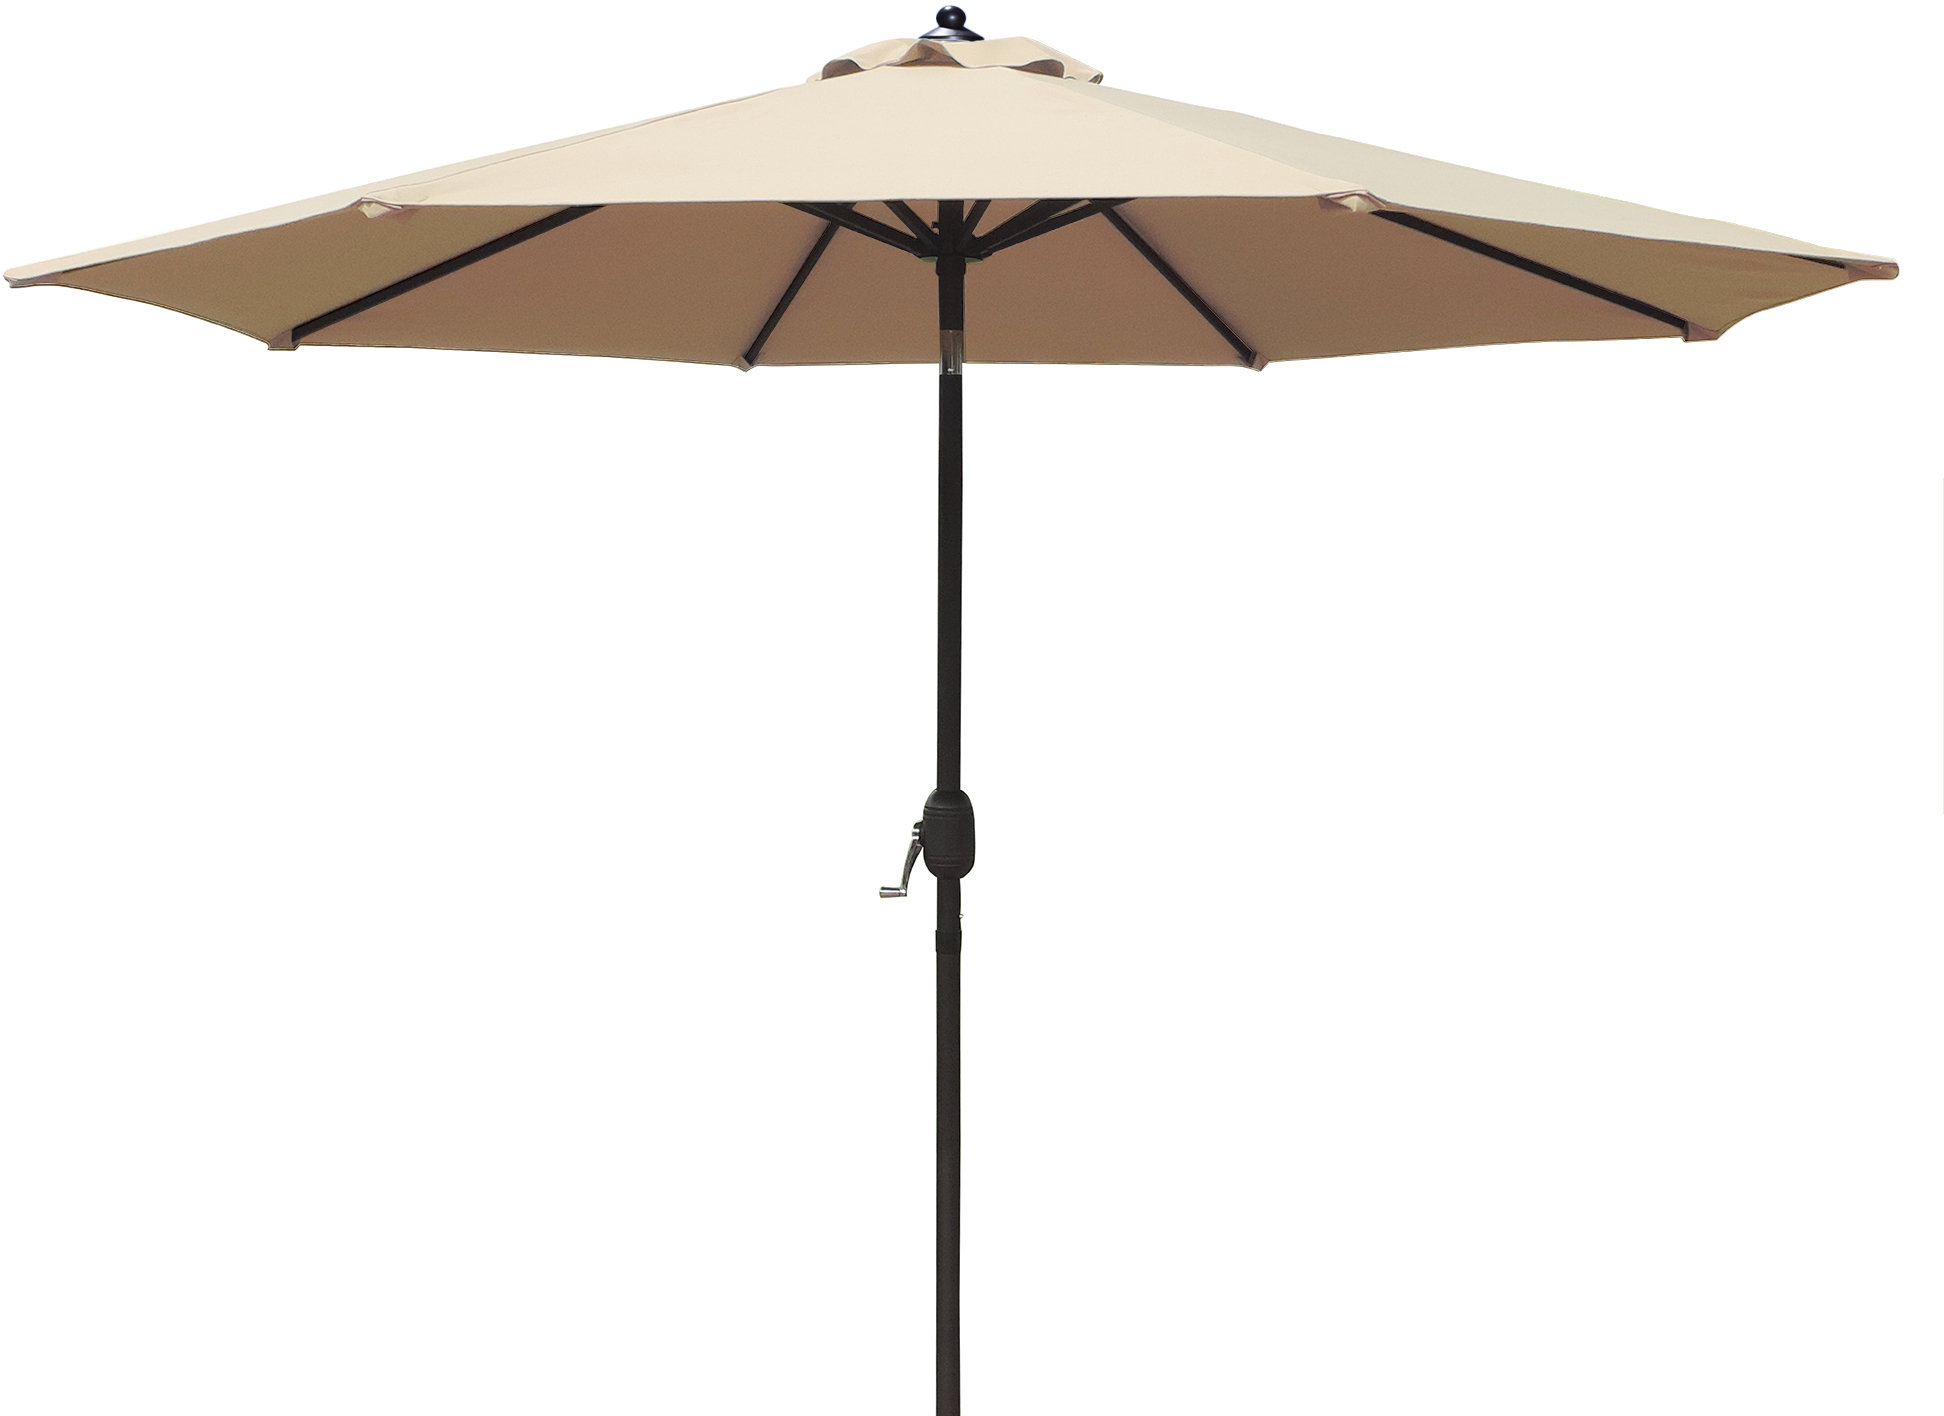 2019 Bricelyn Market Umbrellas Intended For 9' Market Umbrella (View 1 of 20)